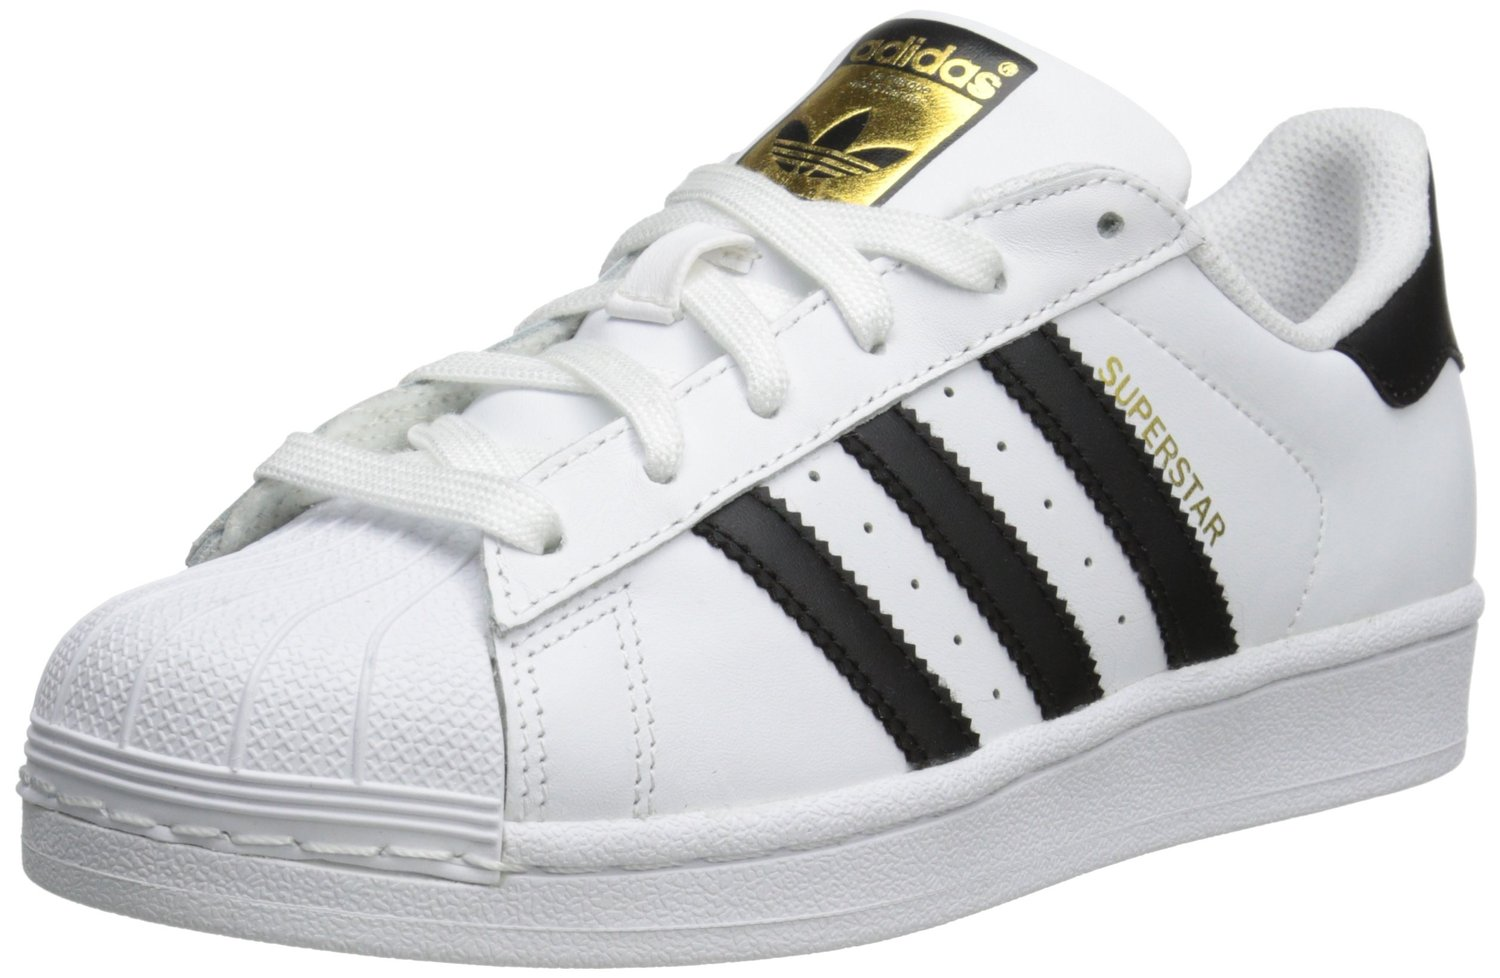 adidas shoes by amazon